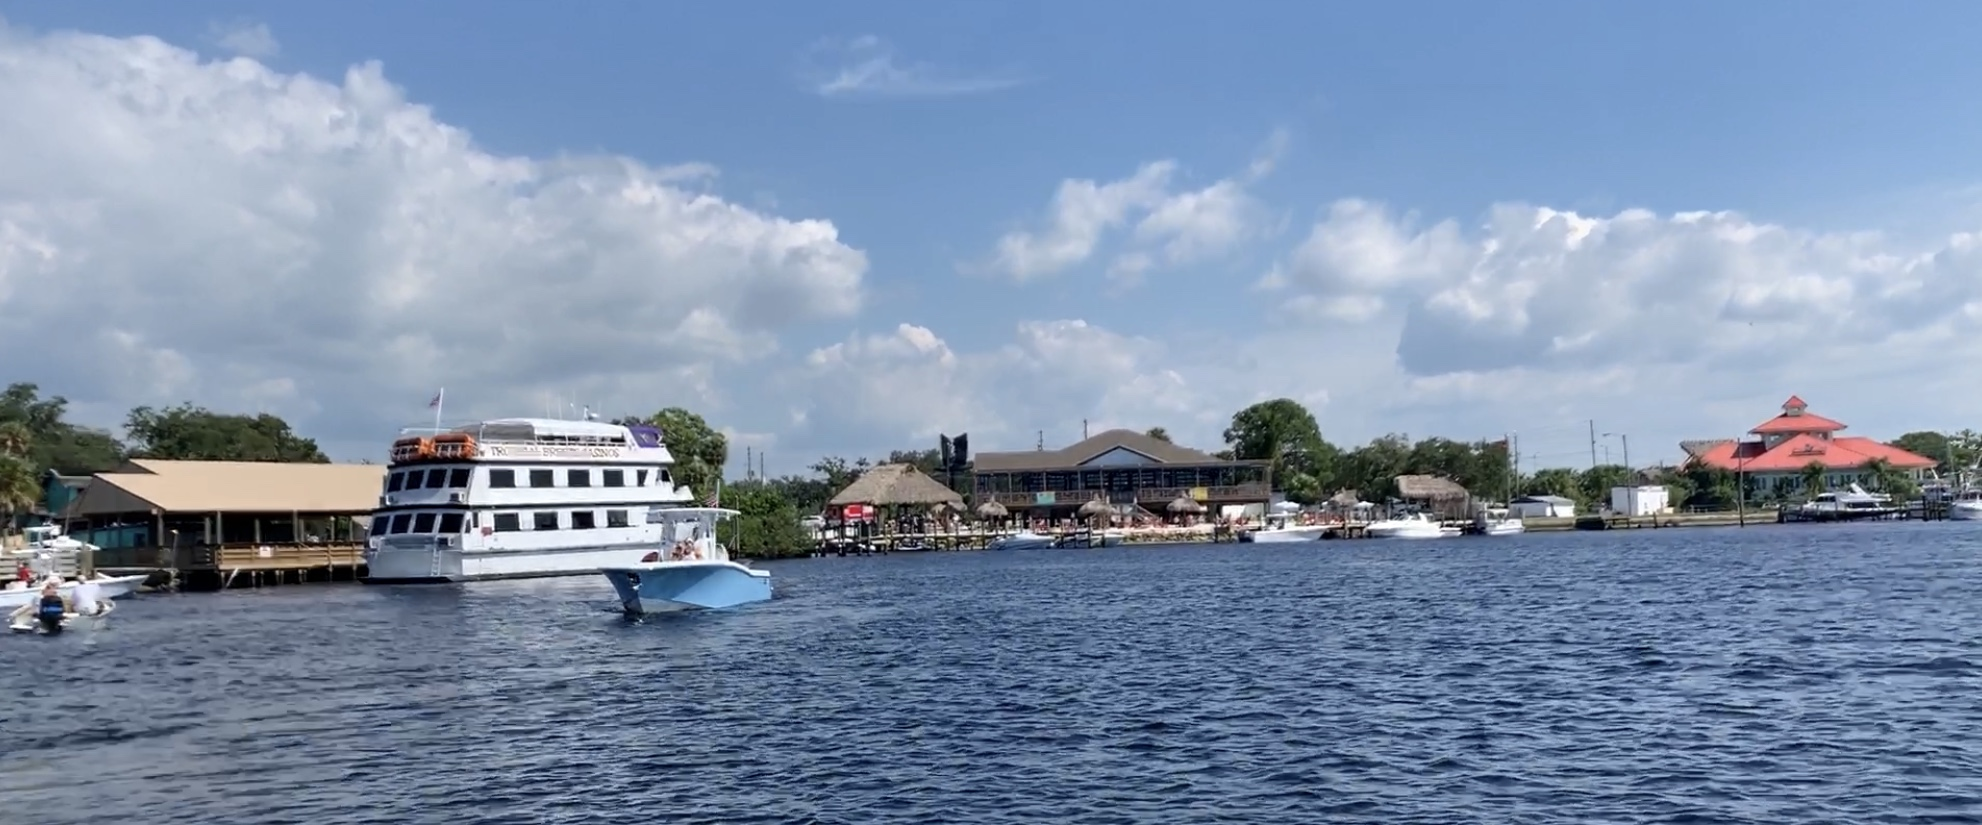 Restaurants of the Cotee River